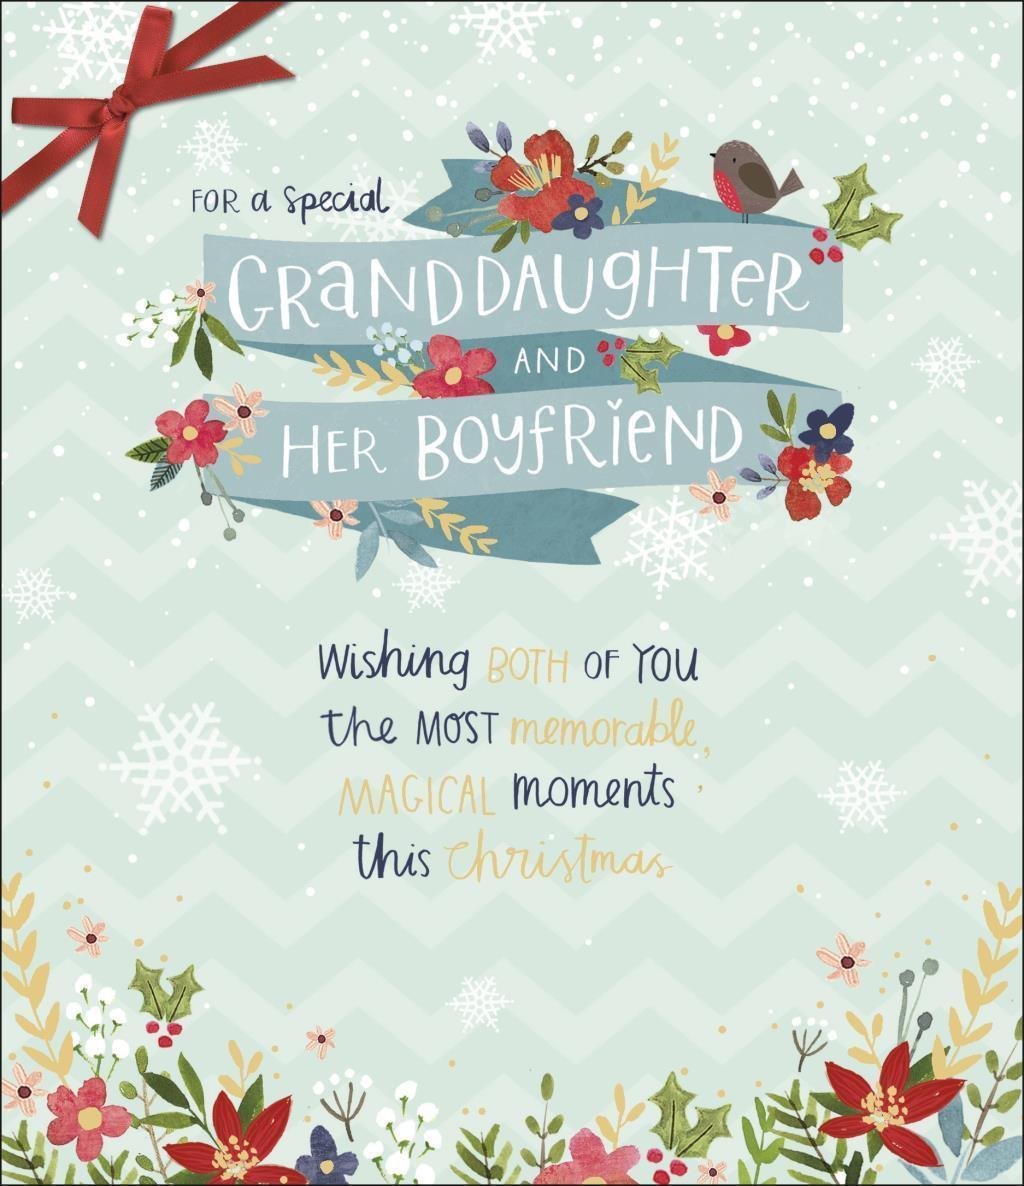 Amazon.com: For A Special Granddaughter And Her Boyfriend - Greeting ...